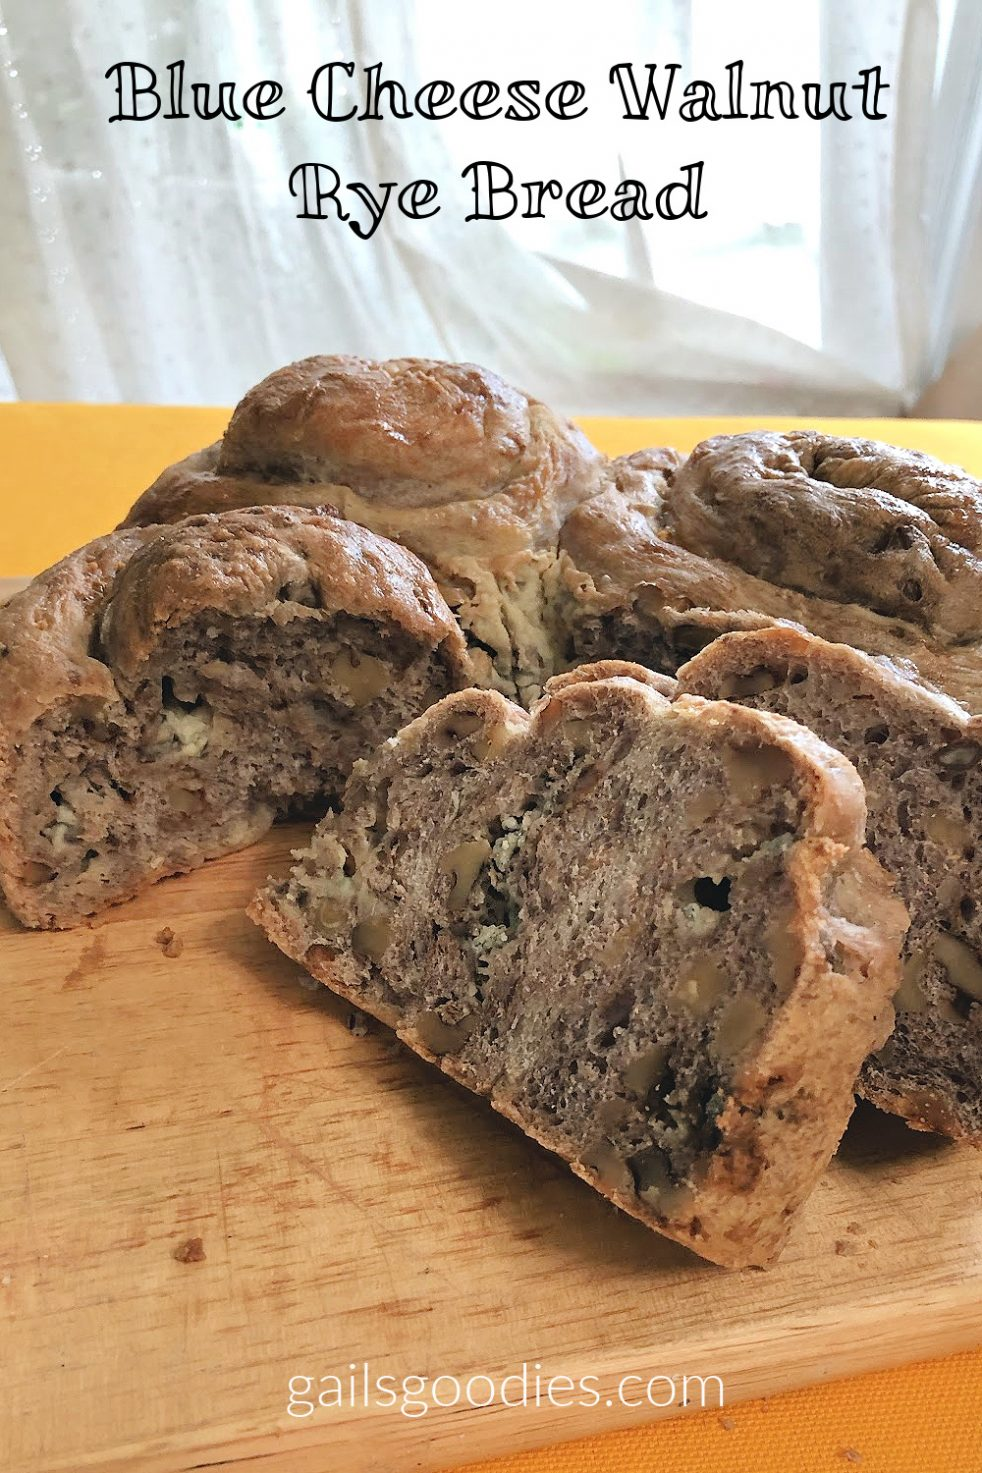 A loaf of blue cheese walnut rye bread sits on a pale brown wooden board. The Bread has been sliced and two slices are propped up against the cut loaf. The slice in the foreground had three clear pockets of blue cheese and the slice is vertically streaked with lighter blue cheese and darker rye. The sliced section of the loaf faces the viewer and has two pockets of blue cheese along with striations of rye and lighter bread. Two of the rolled knots in the loaf are visible behind the slices.